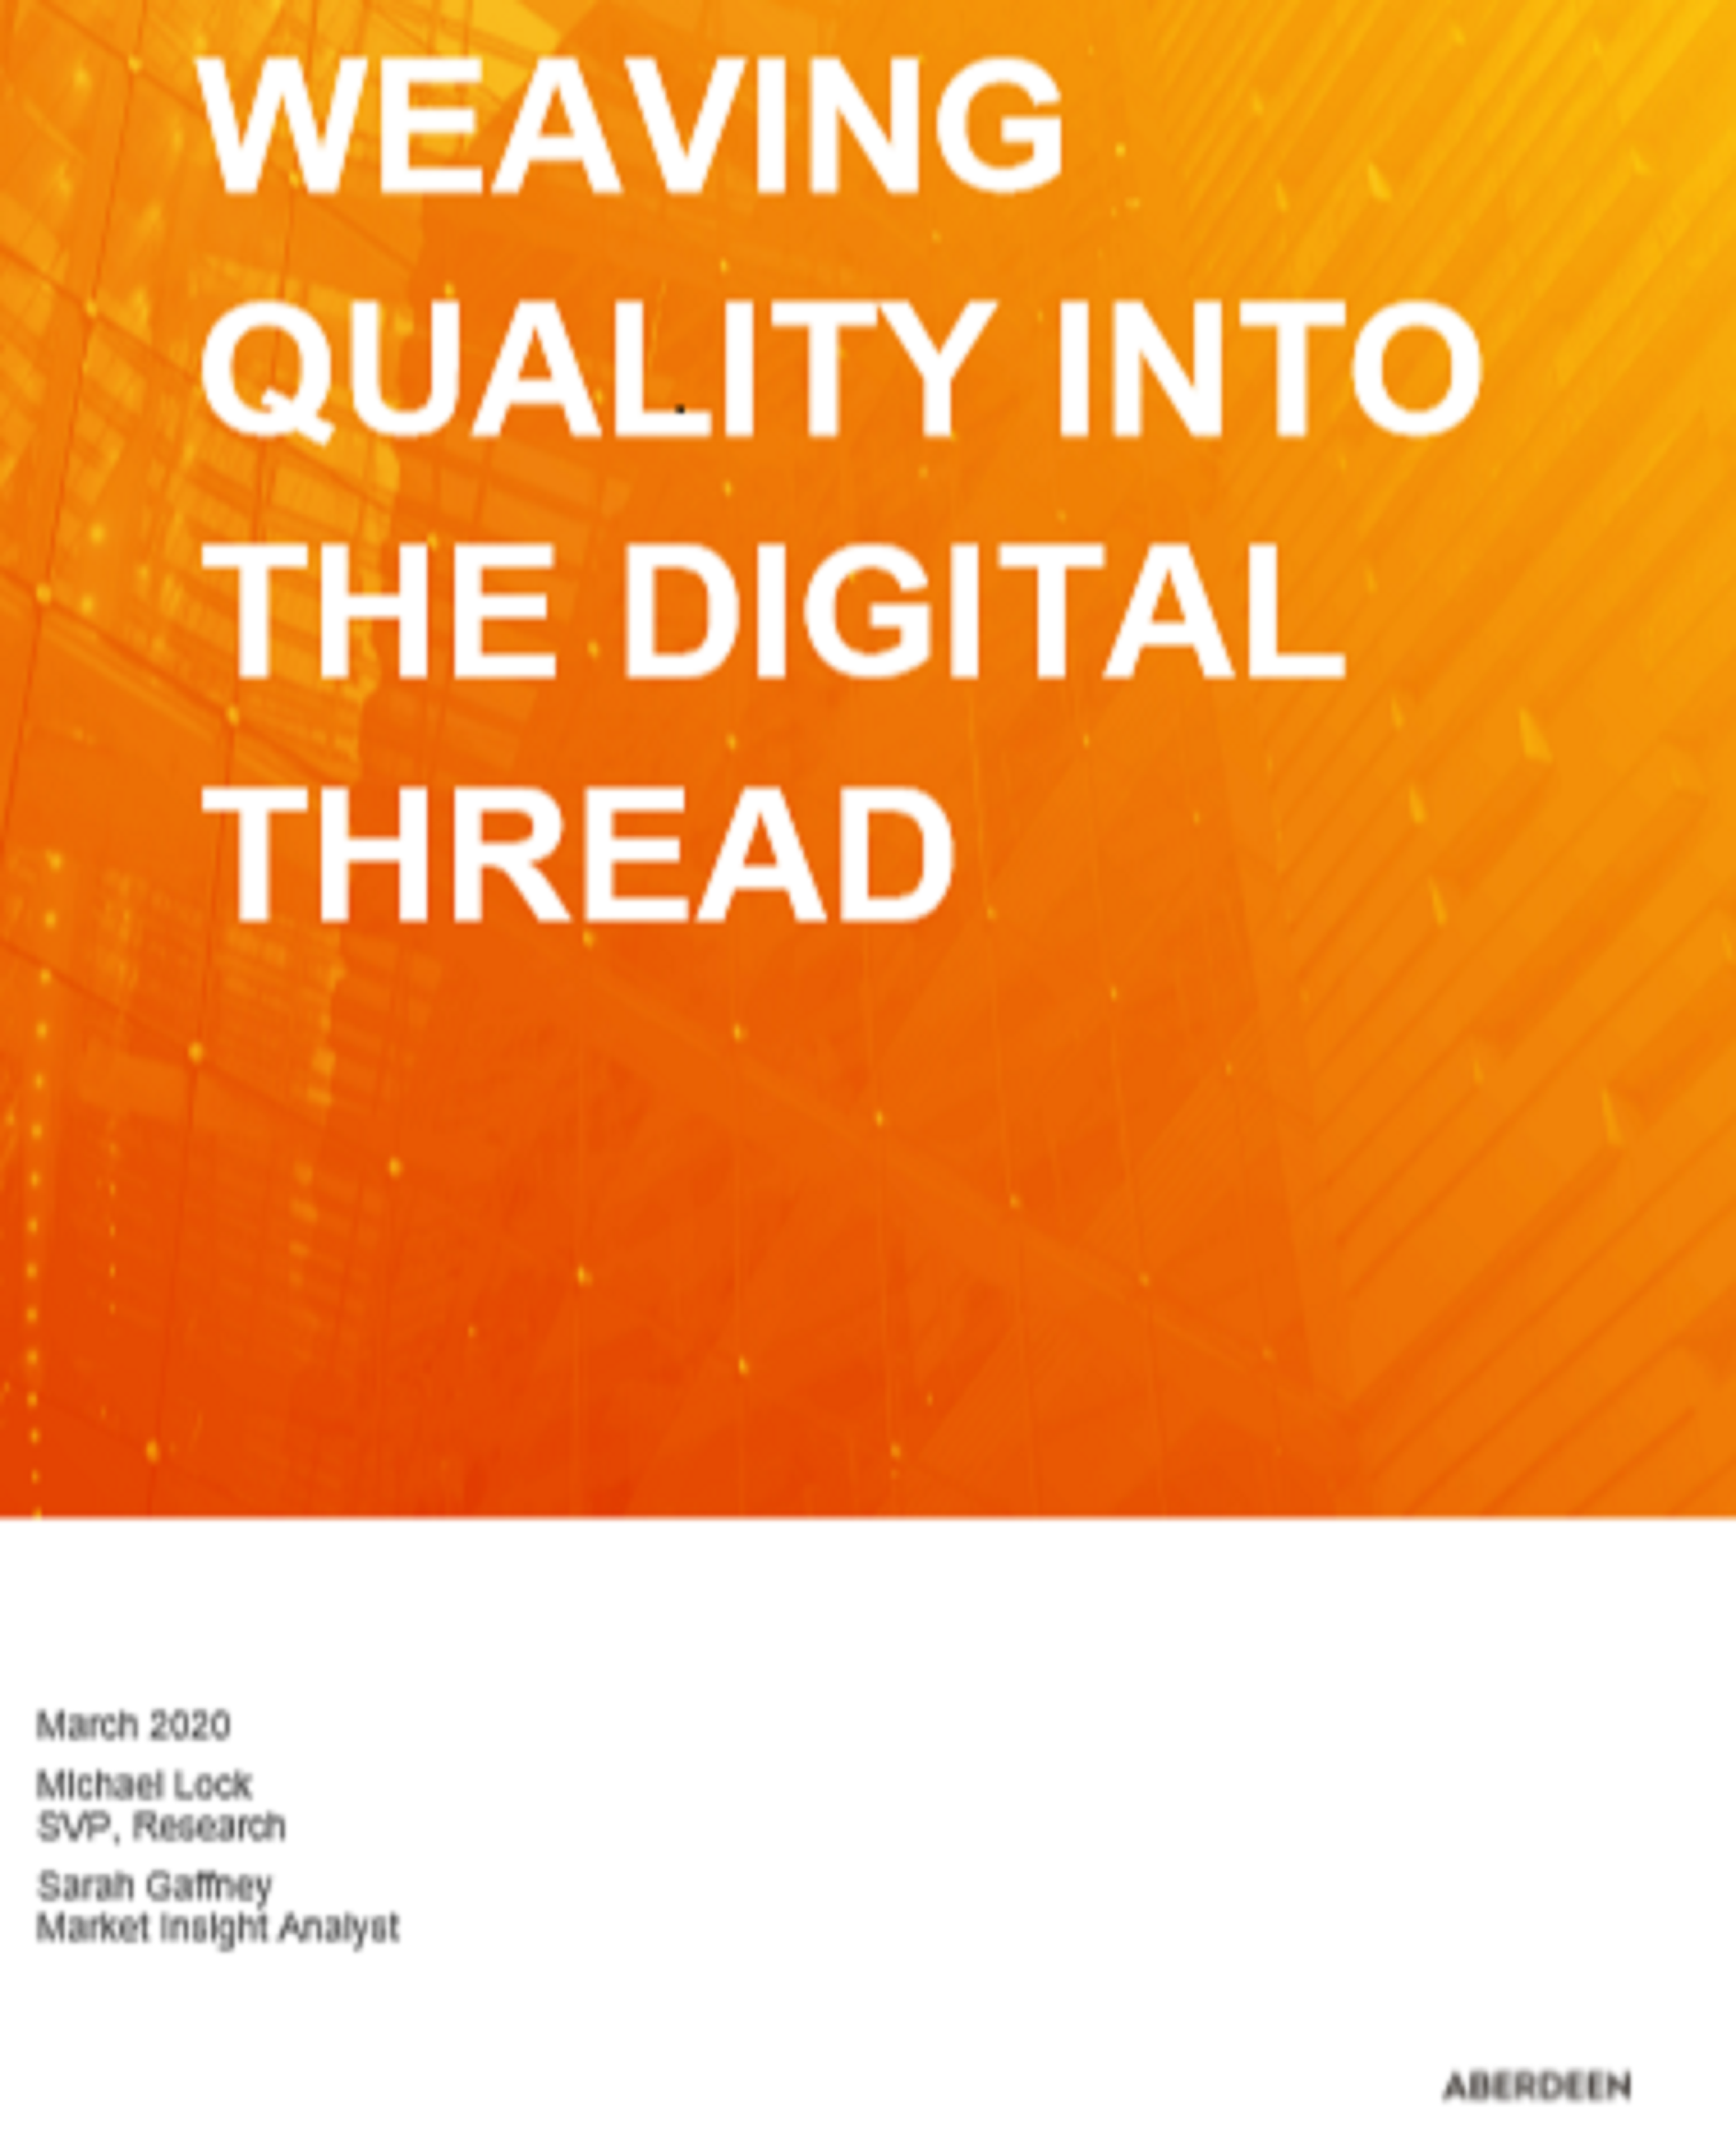 Weaving Quality into the Digital Thread